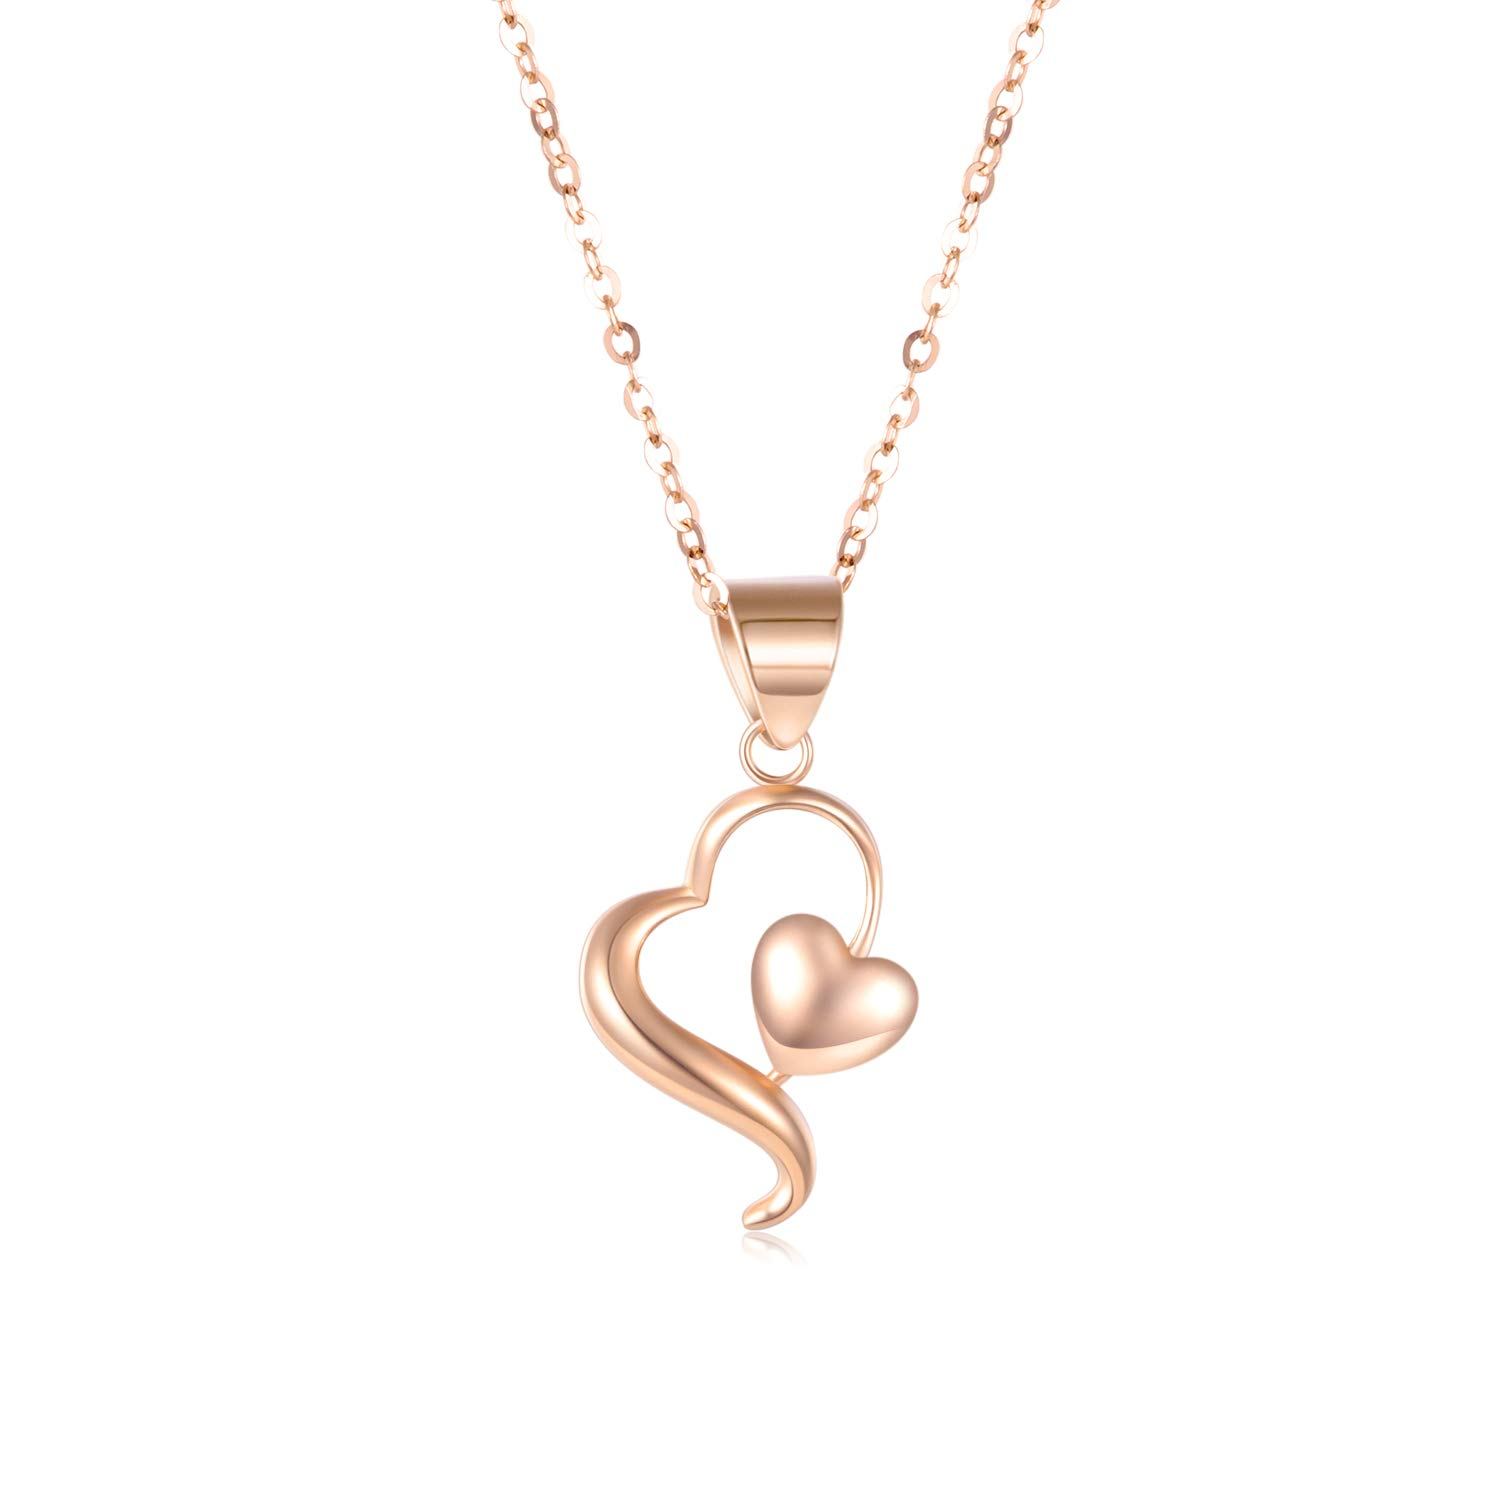 14k 18K Gold Heart Pendant Necklace for Women, Real Gold Love Jewelry for Her, 18 Inch